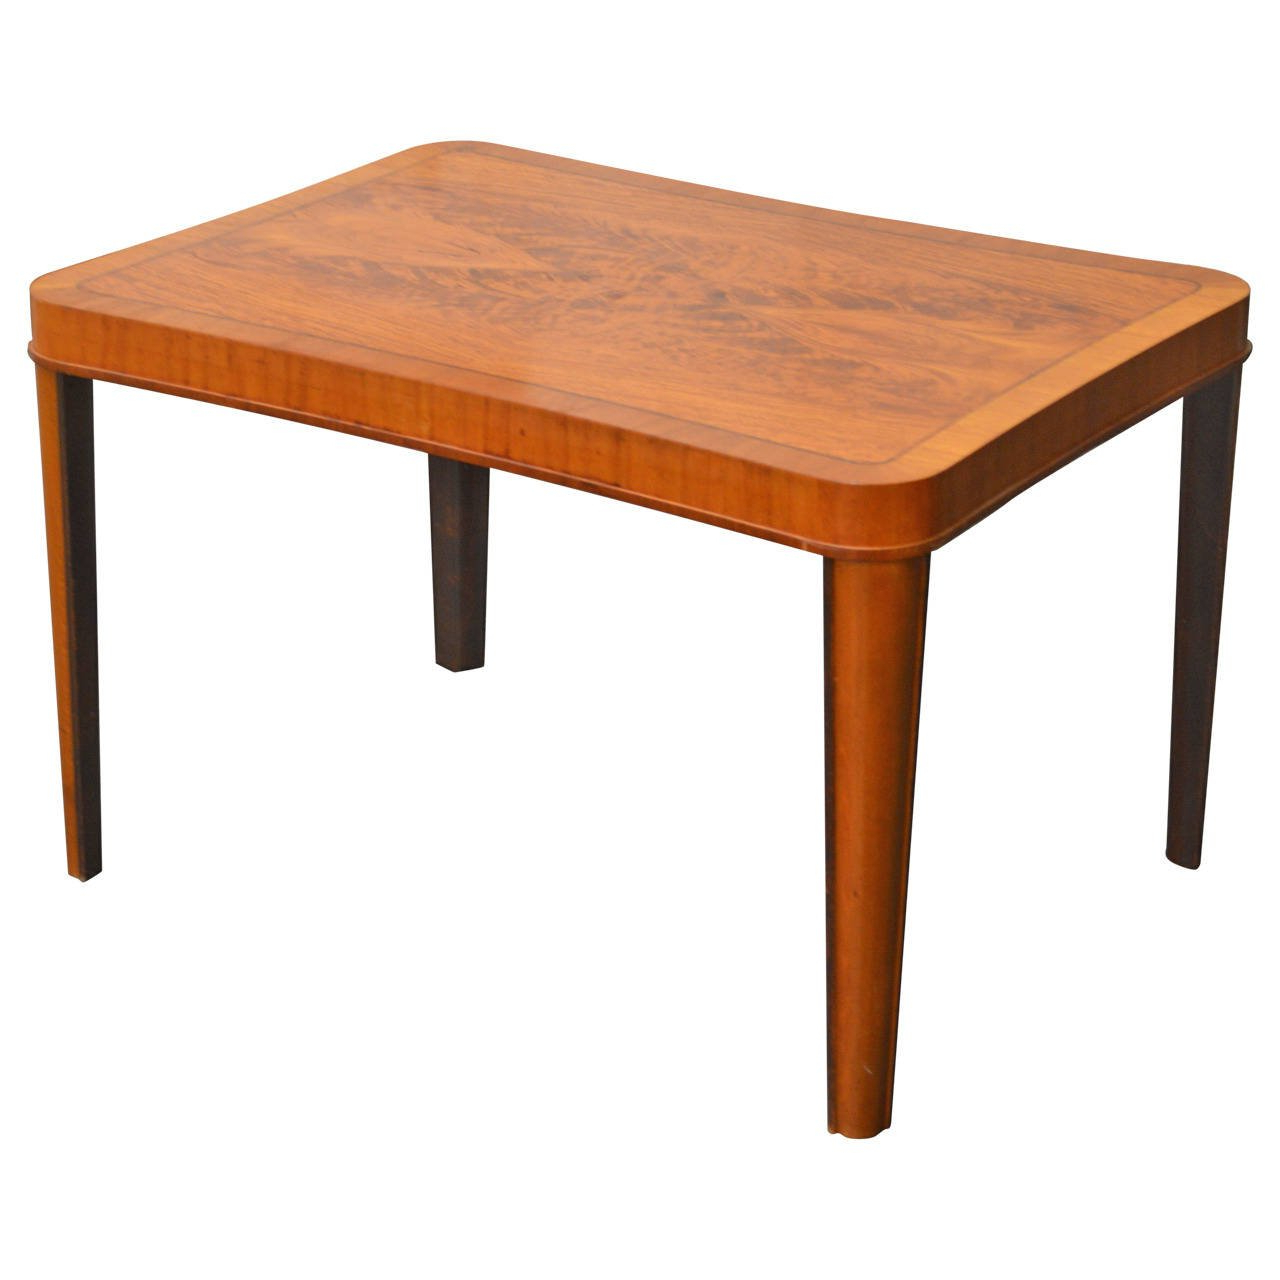 American Period Art Moderne Walnut Coffee Table For Sale At 1stdibs Within Intarsia Console Tables (View 5 of 20)